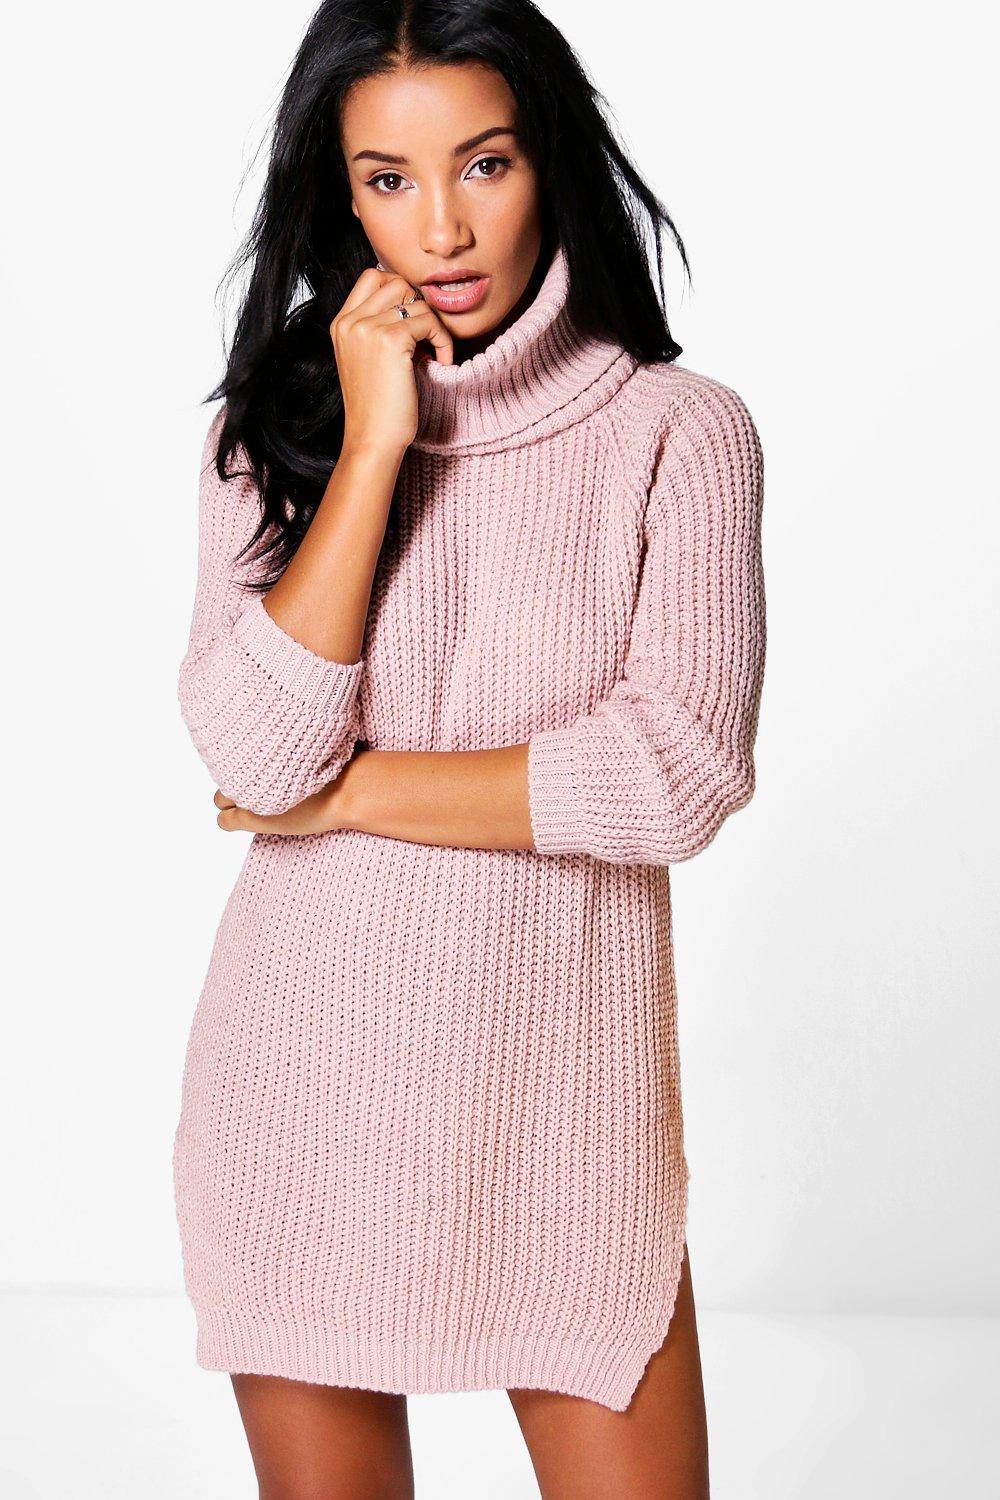 Roll Neck Soft Knit Jumper Dress  blush